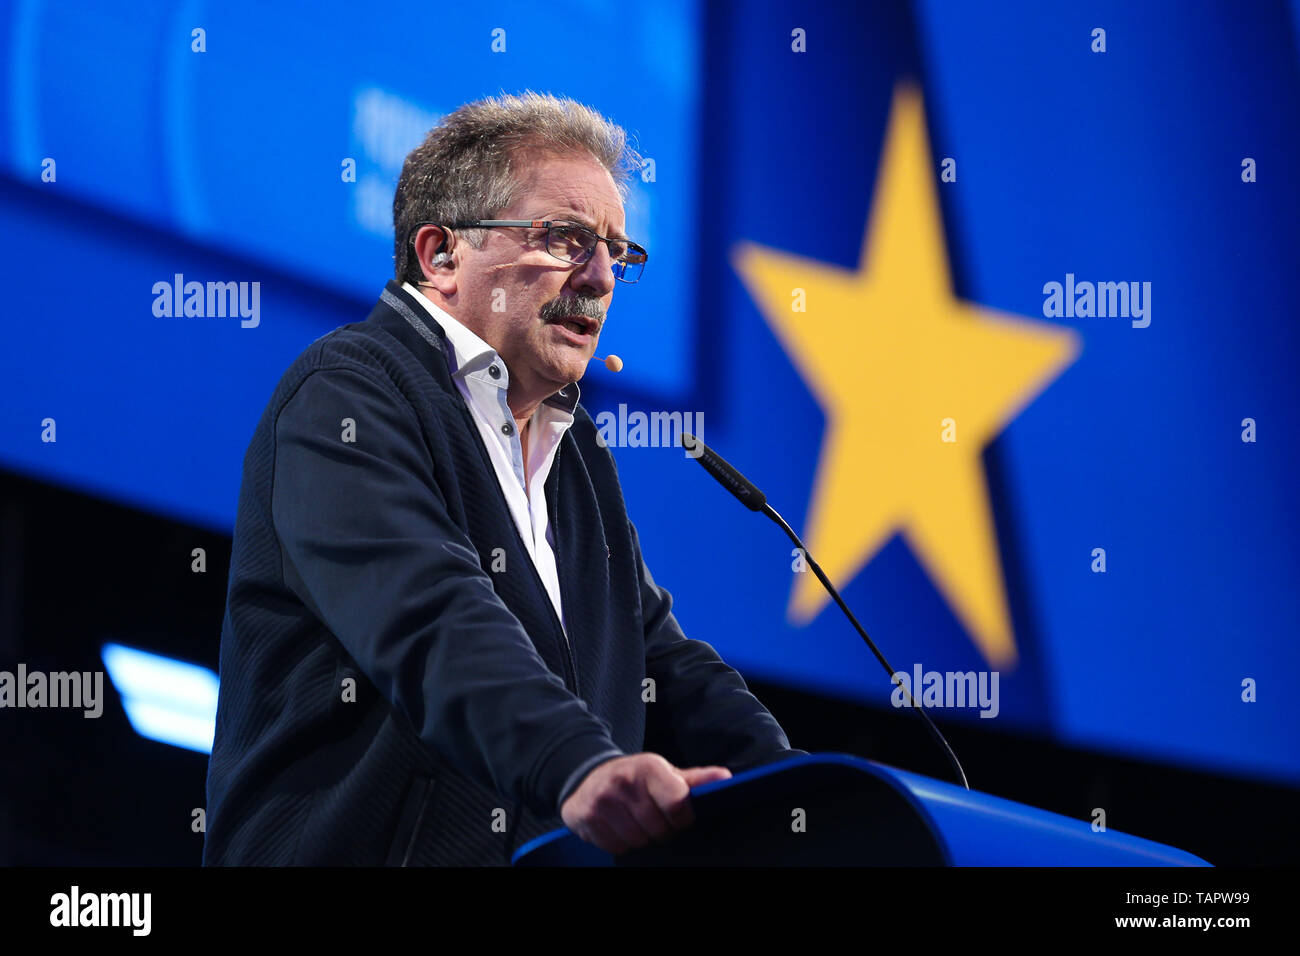 Brussels, Belgium. 27th May 2019. European Left lead candidate to the Presidency of the European Commission Nico Cue speaks at the European Parliament in Brussels, Belgium, May 27, 2019. Voters in Germany, Lithuania, Cyprus, Bulgaria, Greece and Italy cast their ballots on Sunday in elections to the European Parliament (EP). Credit: Xinhua/Alamy Live News Stock Photo